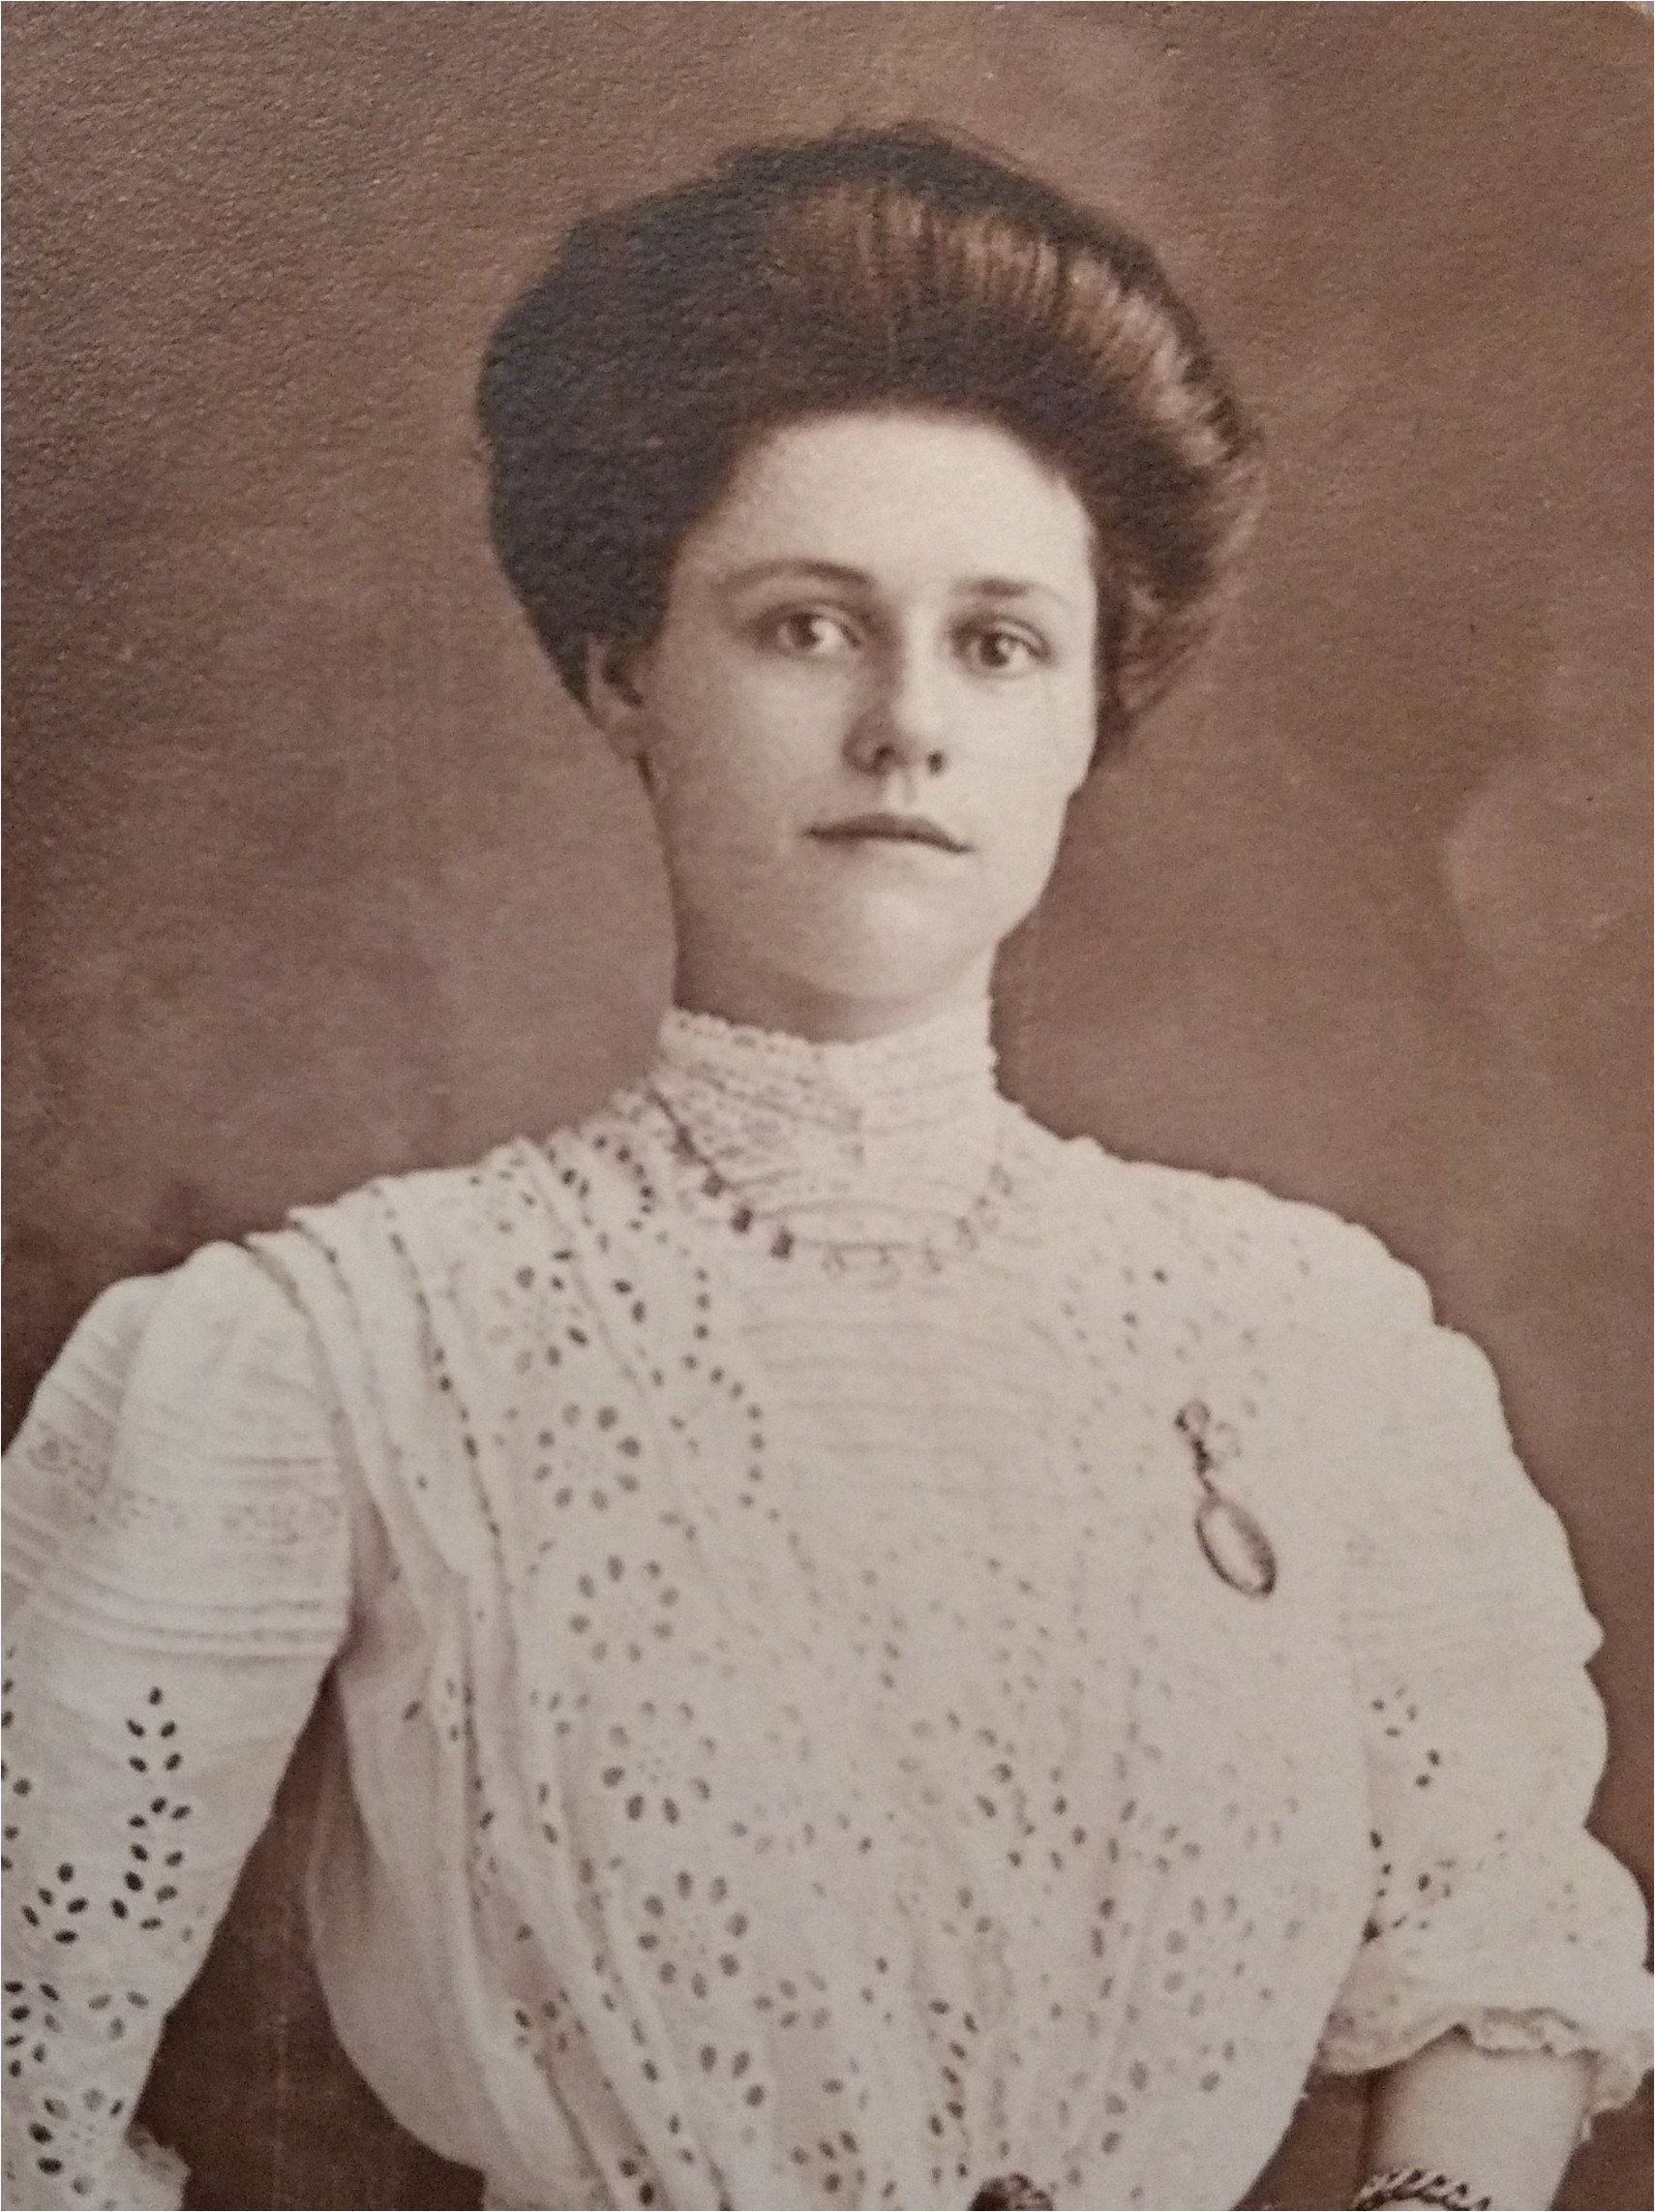 Antique Cabinet Card graph Victorian Edwardian Gibson Girl Beautiful Young Woman Black and White in Long White Edwardian Dress